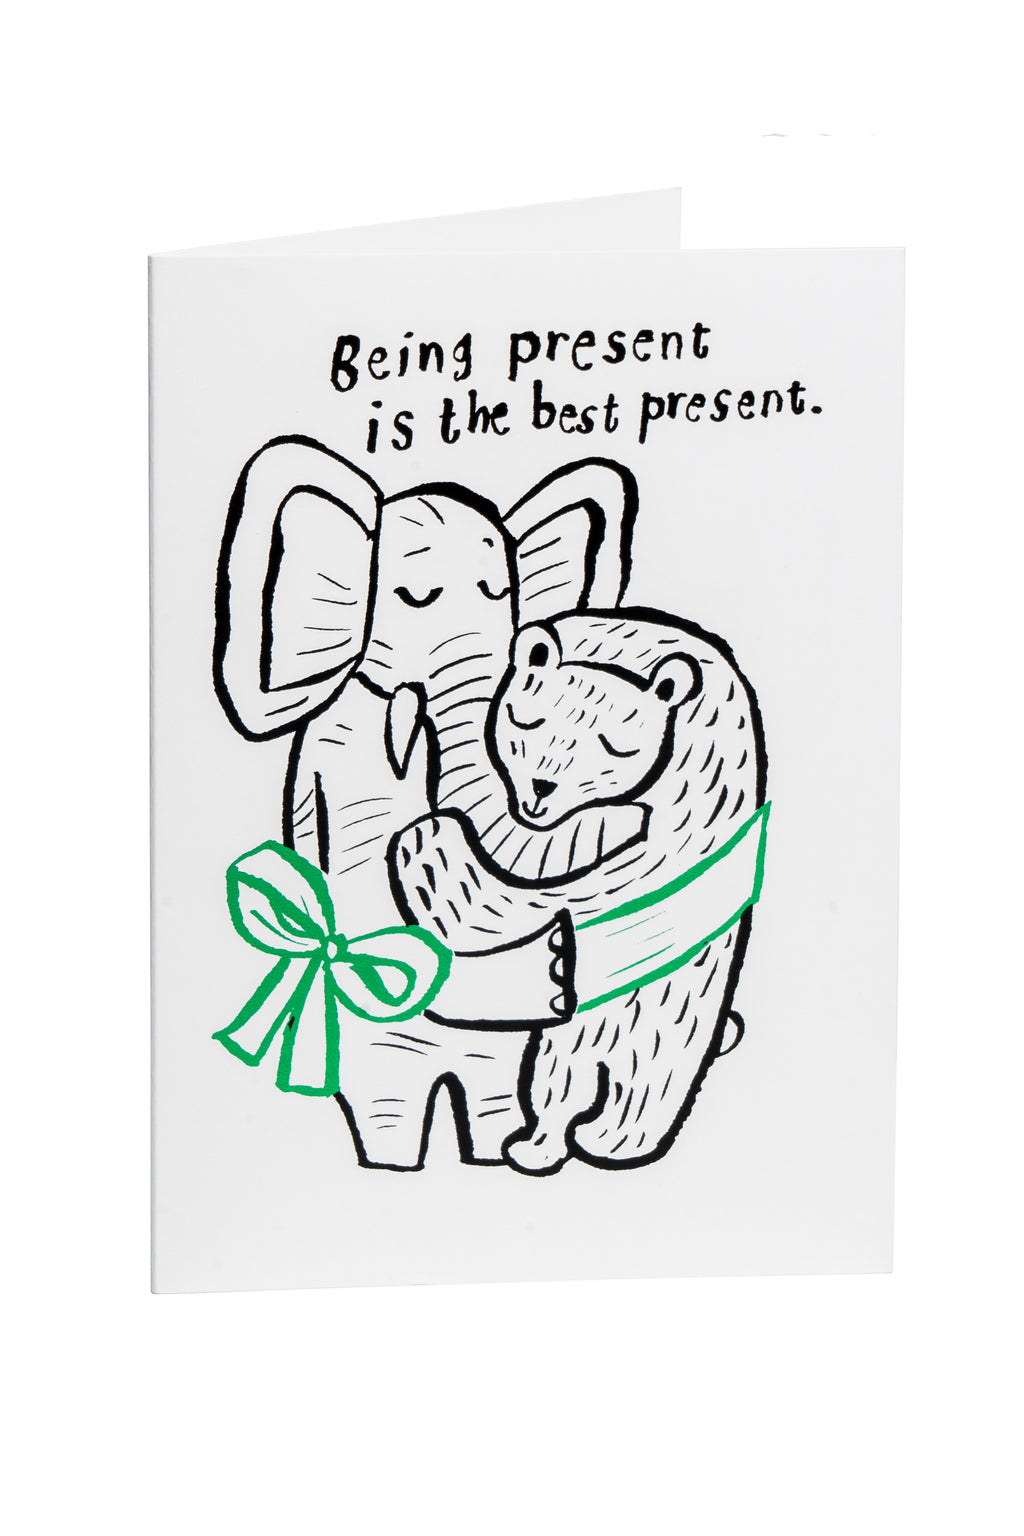 BeingPresentIsTheBestPresent -greeting card